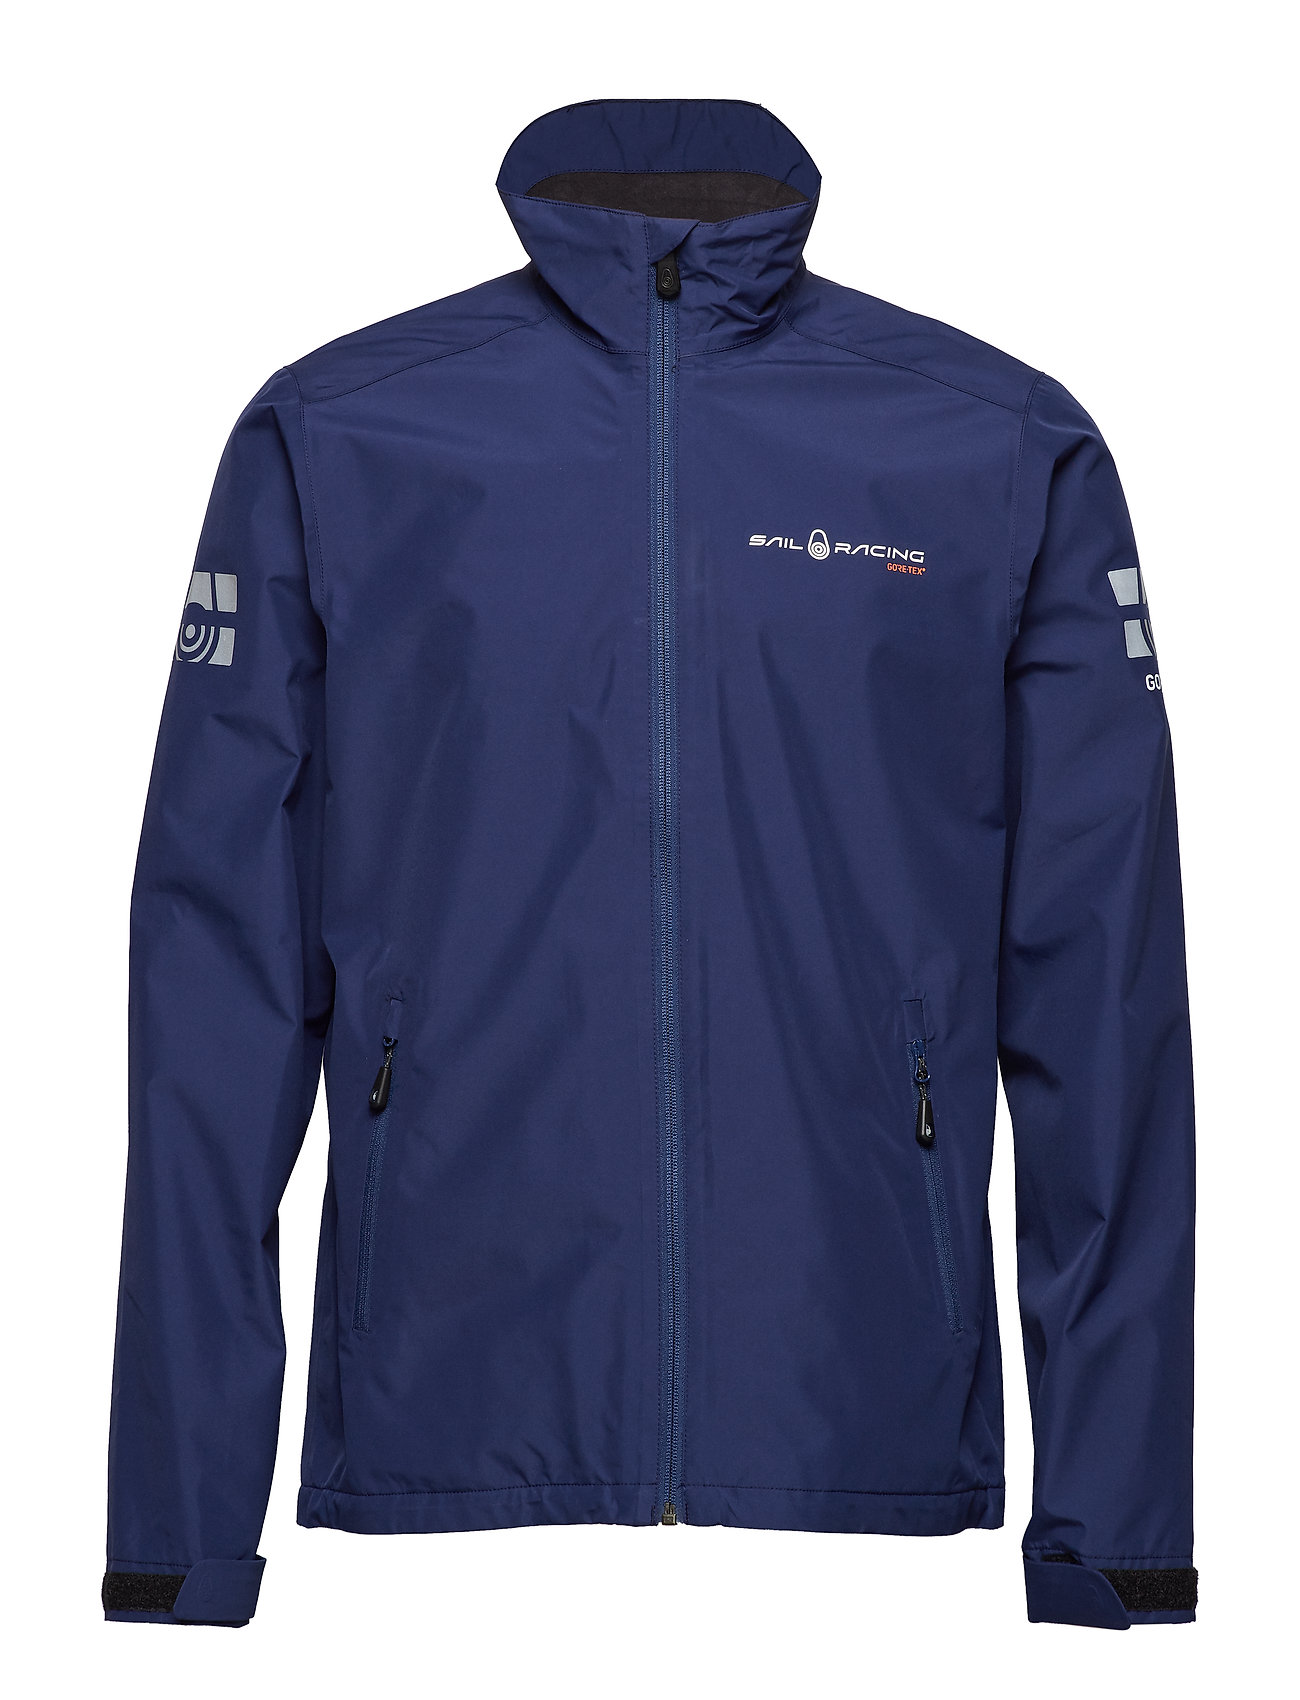 Sail Racing GORE TEX LINK JACKET